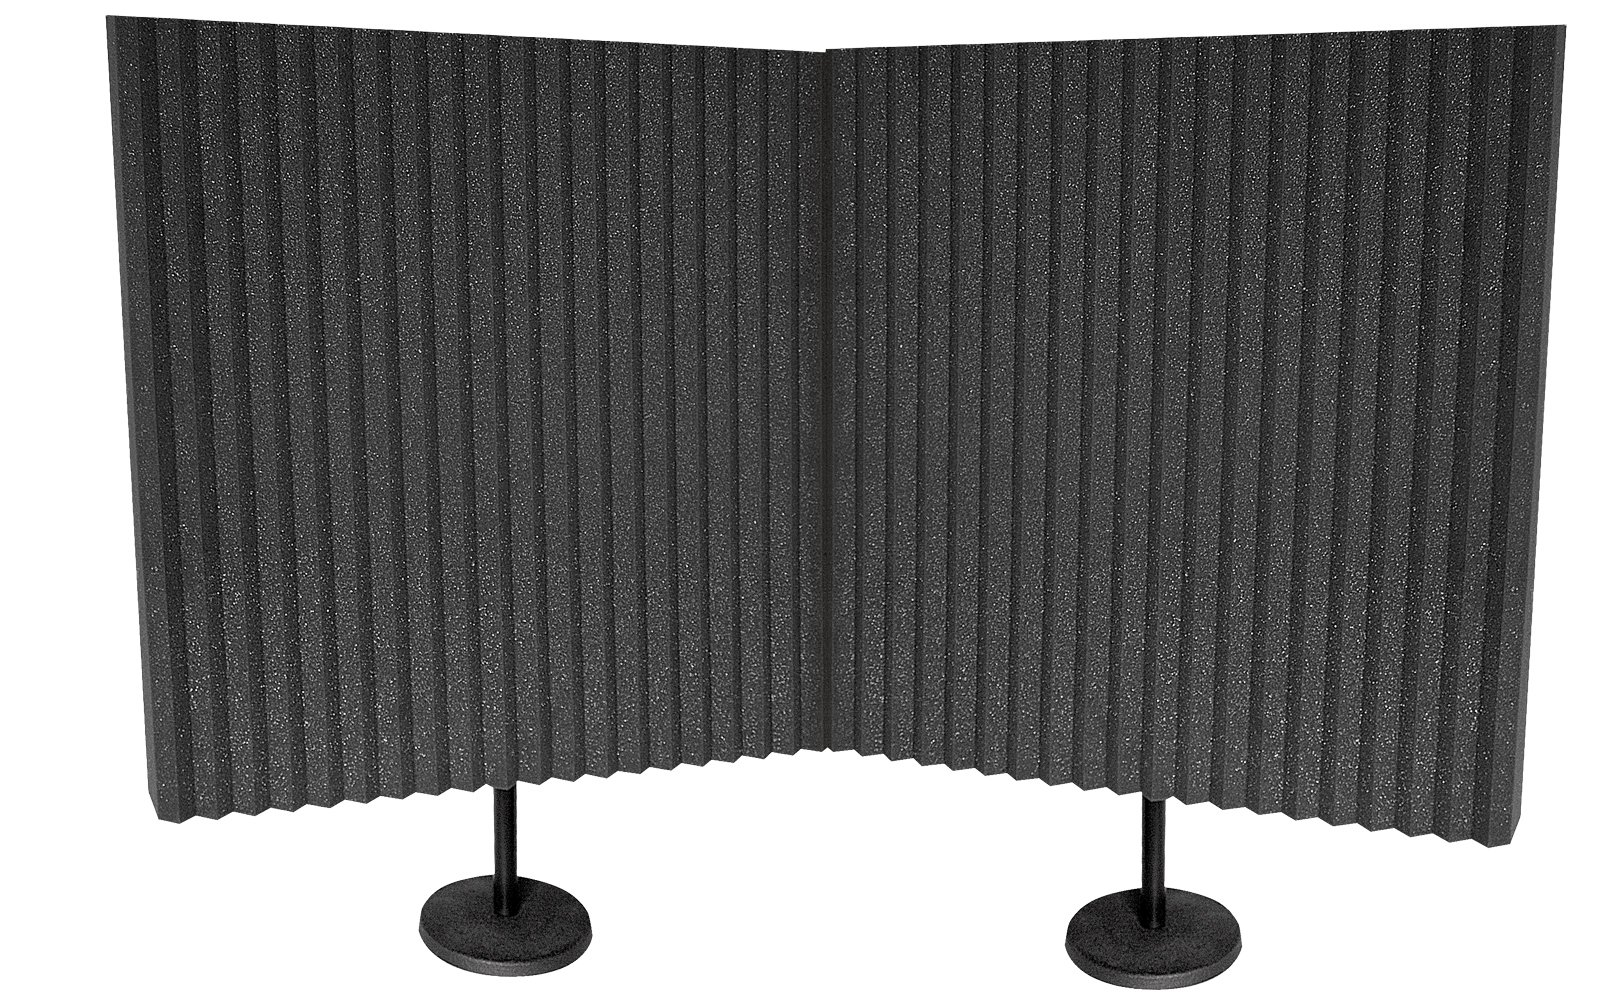 Auralex Acoustics DeskMAX Stand-mounted Portable Acoustic Treatment Panels for Podcasting and Voiceovers